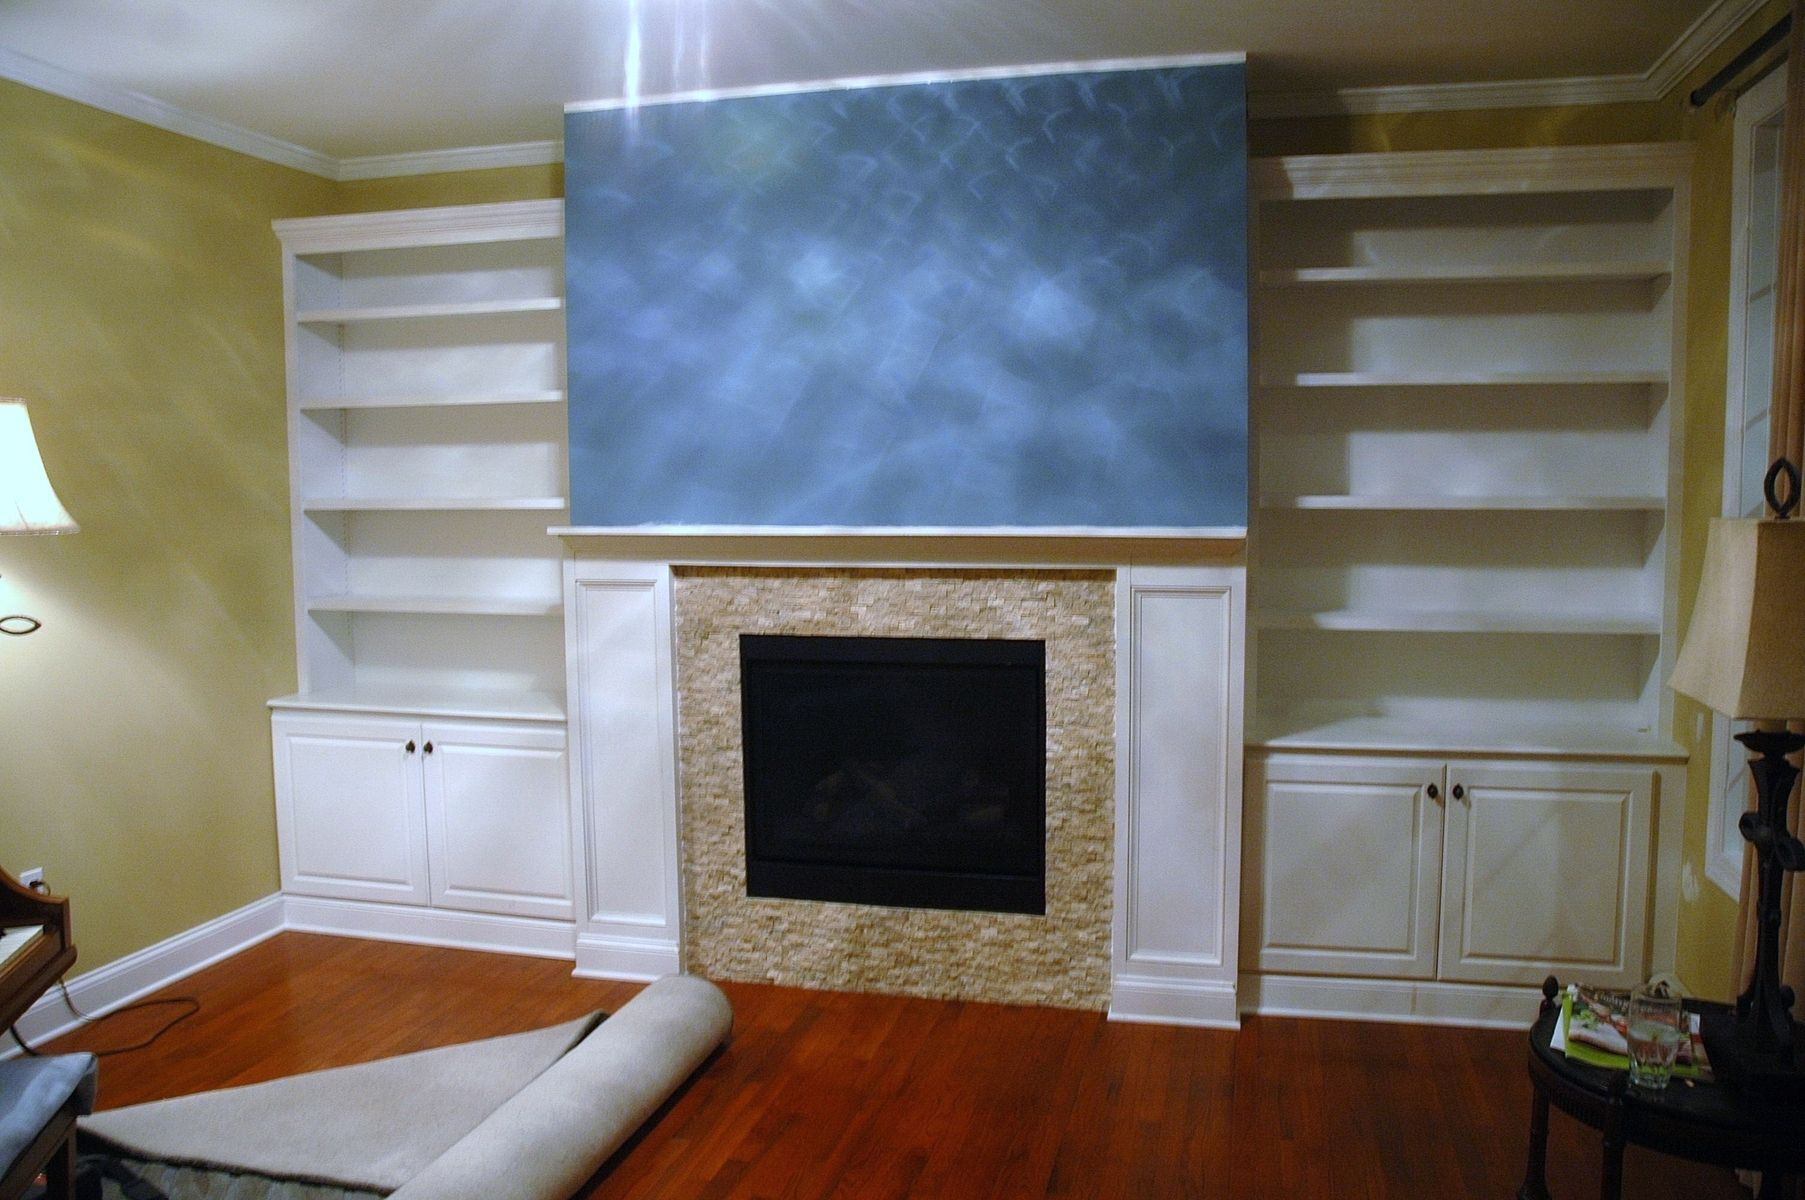 Custom Made Built In Bookcases Base Cabinets And Fireplace Surround